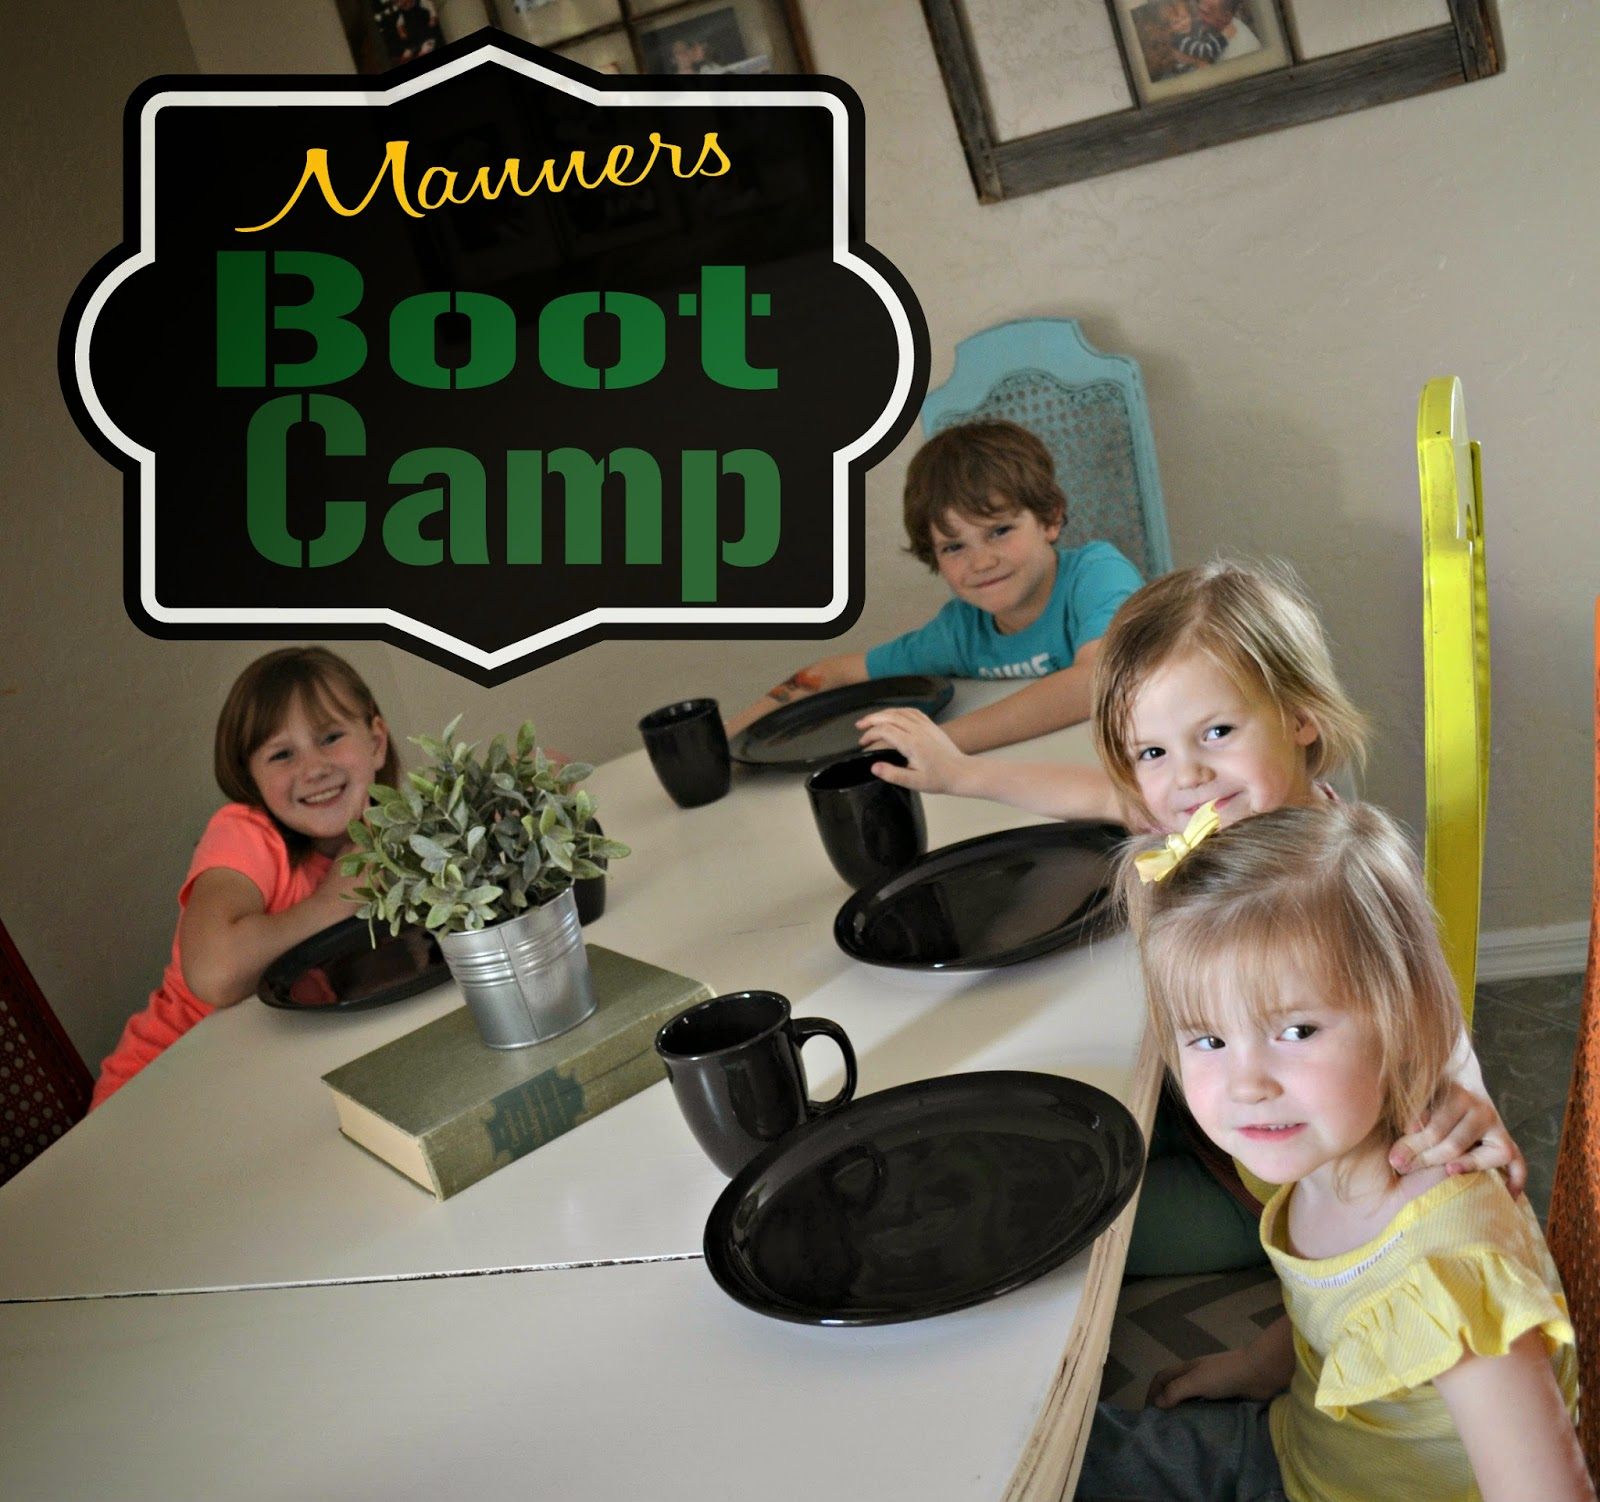 Potlucks on the Porch: Manners Boot Camp {A Fun Way to ...